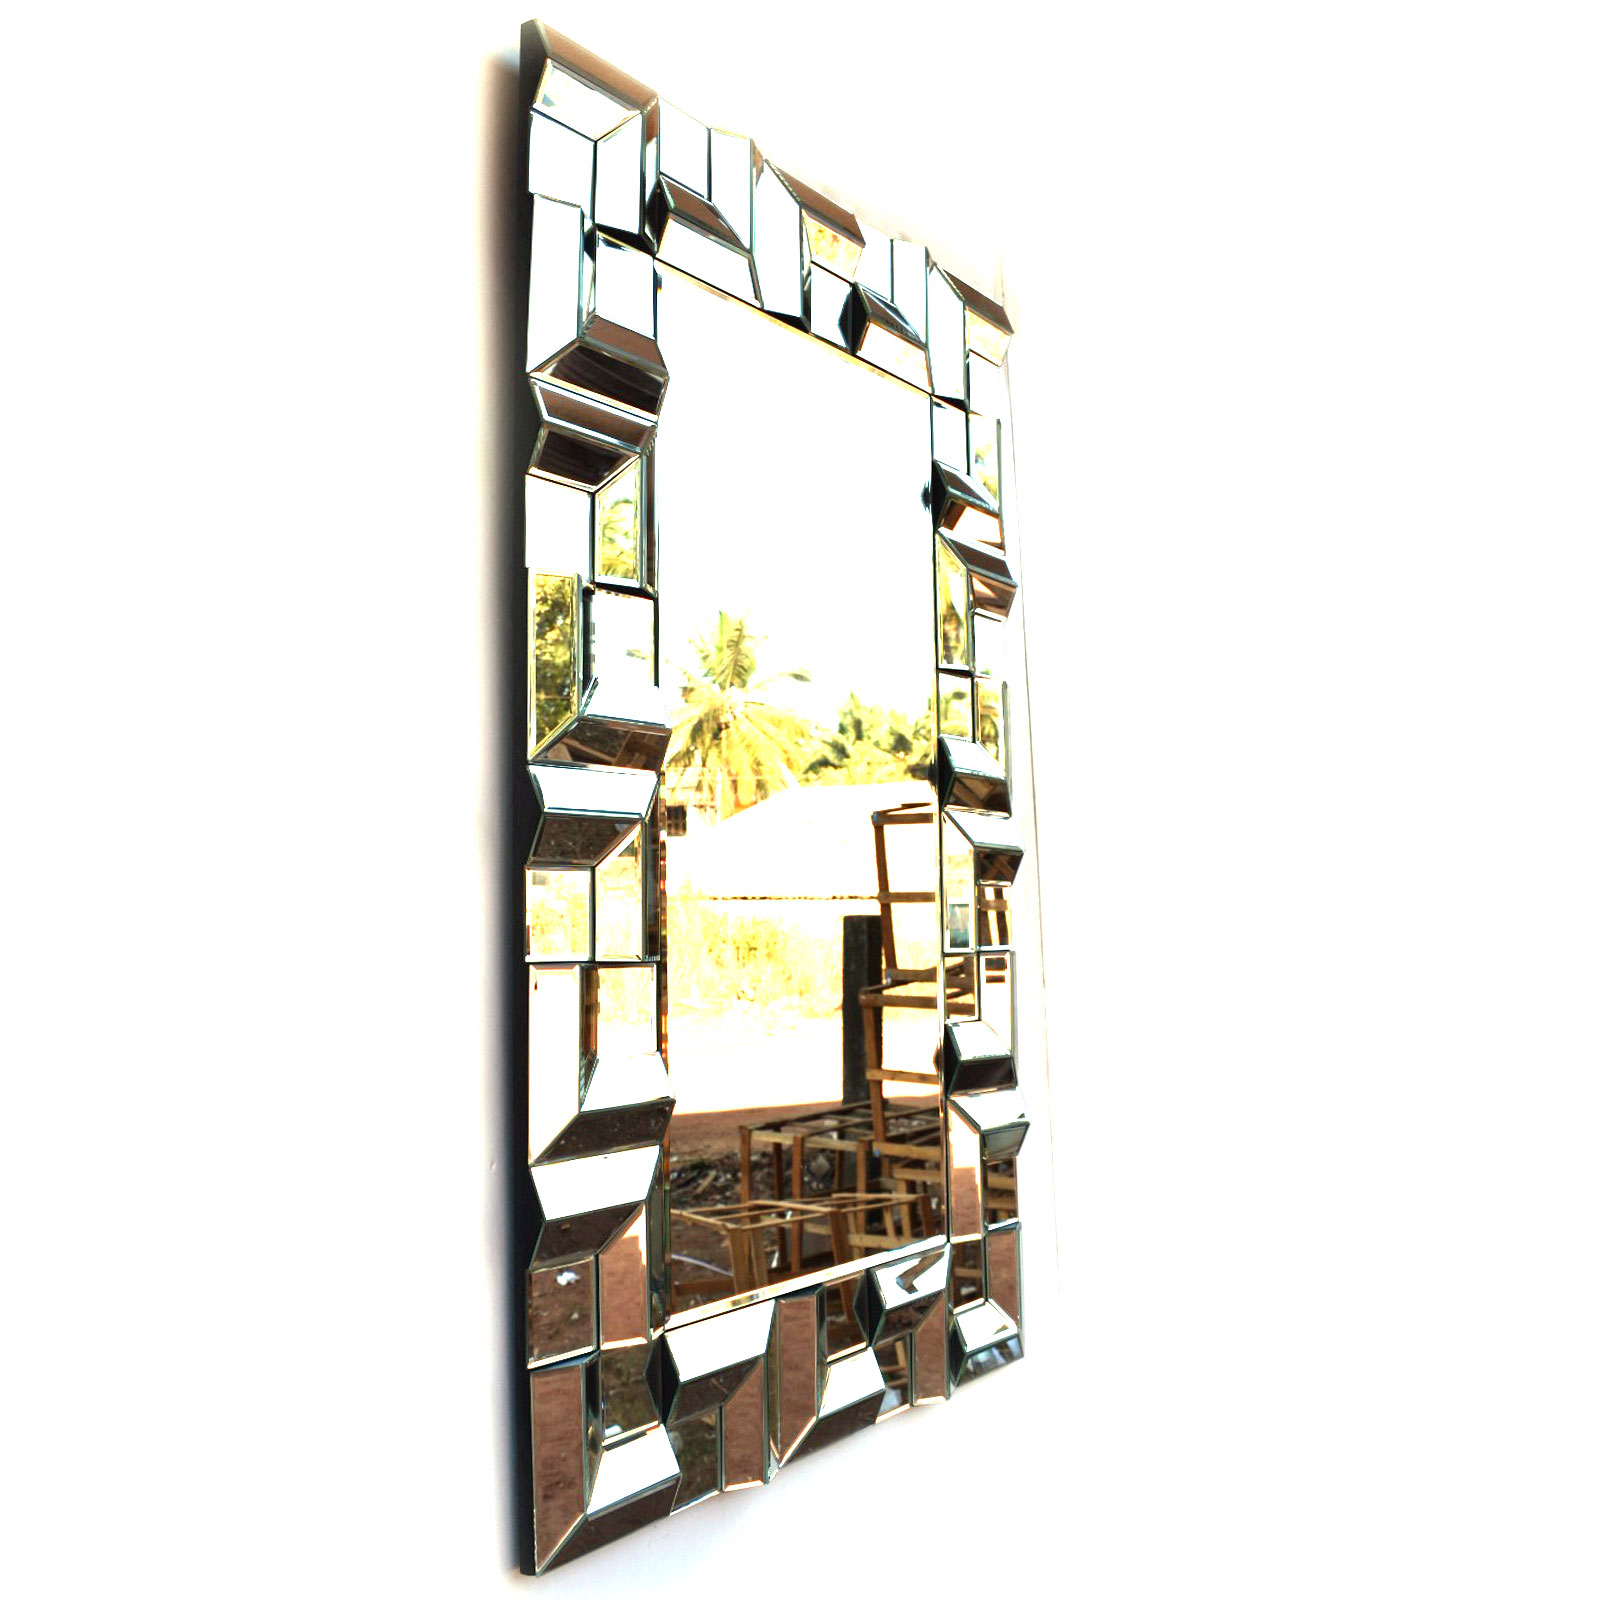 Brizzio Ps 013 Rectangular Multi Panel Decorative Wall Mirror Within Well Known Multi Panel Wall Mirrors (View 4 of 20)